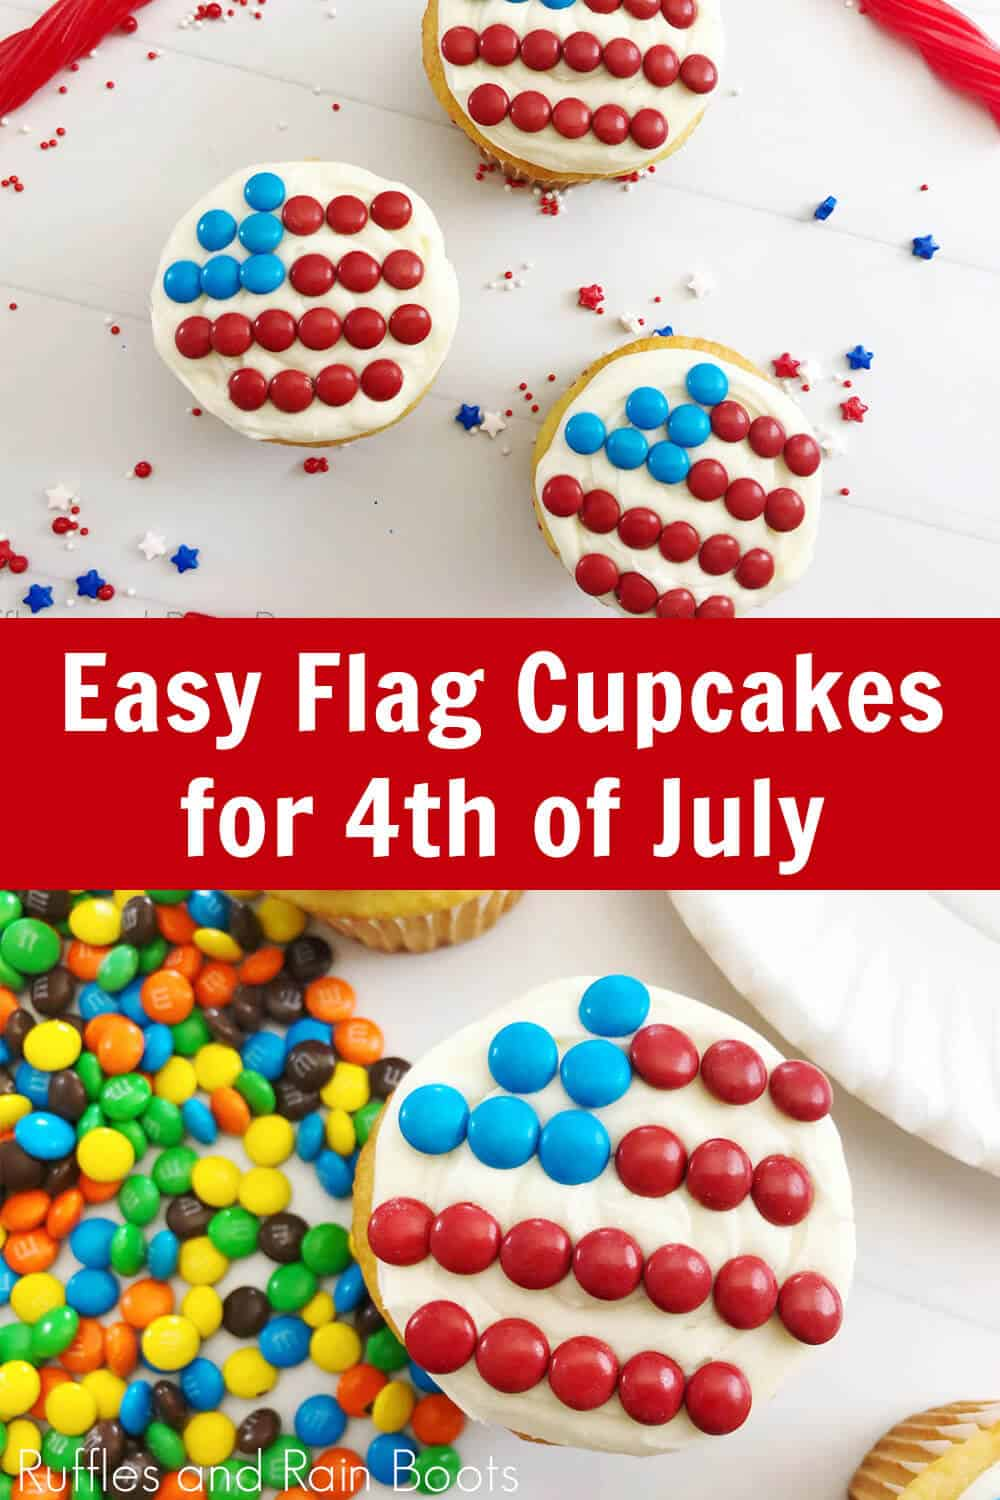 photo collage of overhead view of flag cupcakes, white cupcakes decorated with a flag made of candy with text which reads easy flag cupcakes for 4th of July